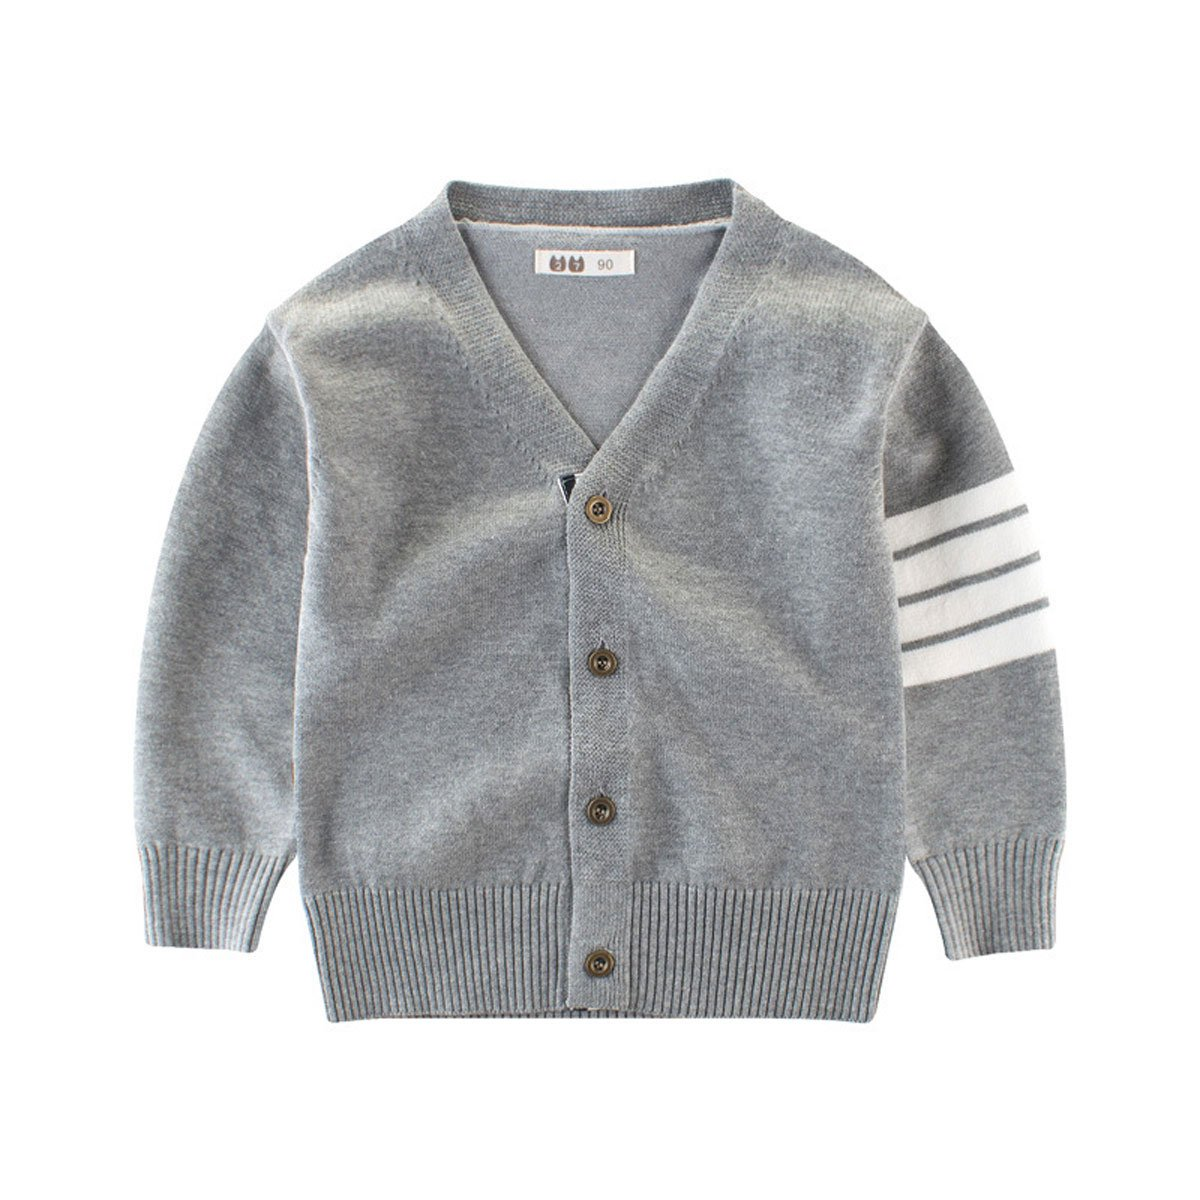 LANMWORN Baby Boys Girls V Neck Sweater Cardigan,Toddler Boys Fashion Long Sleeve 2 Color Warm Button Knitwear Outwear.